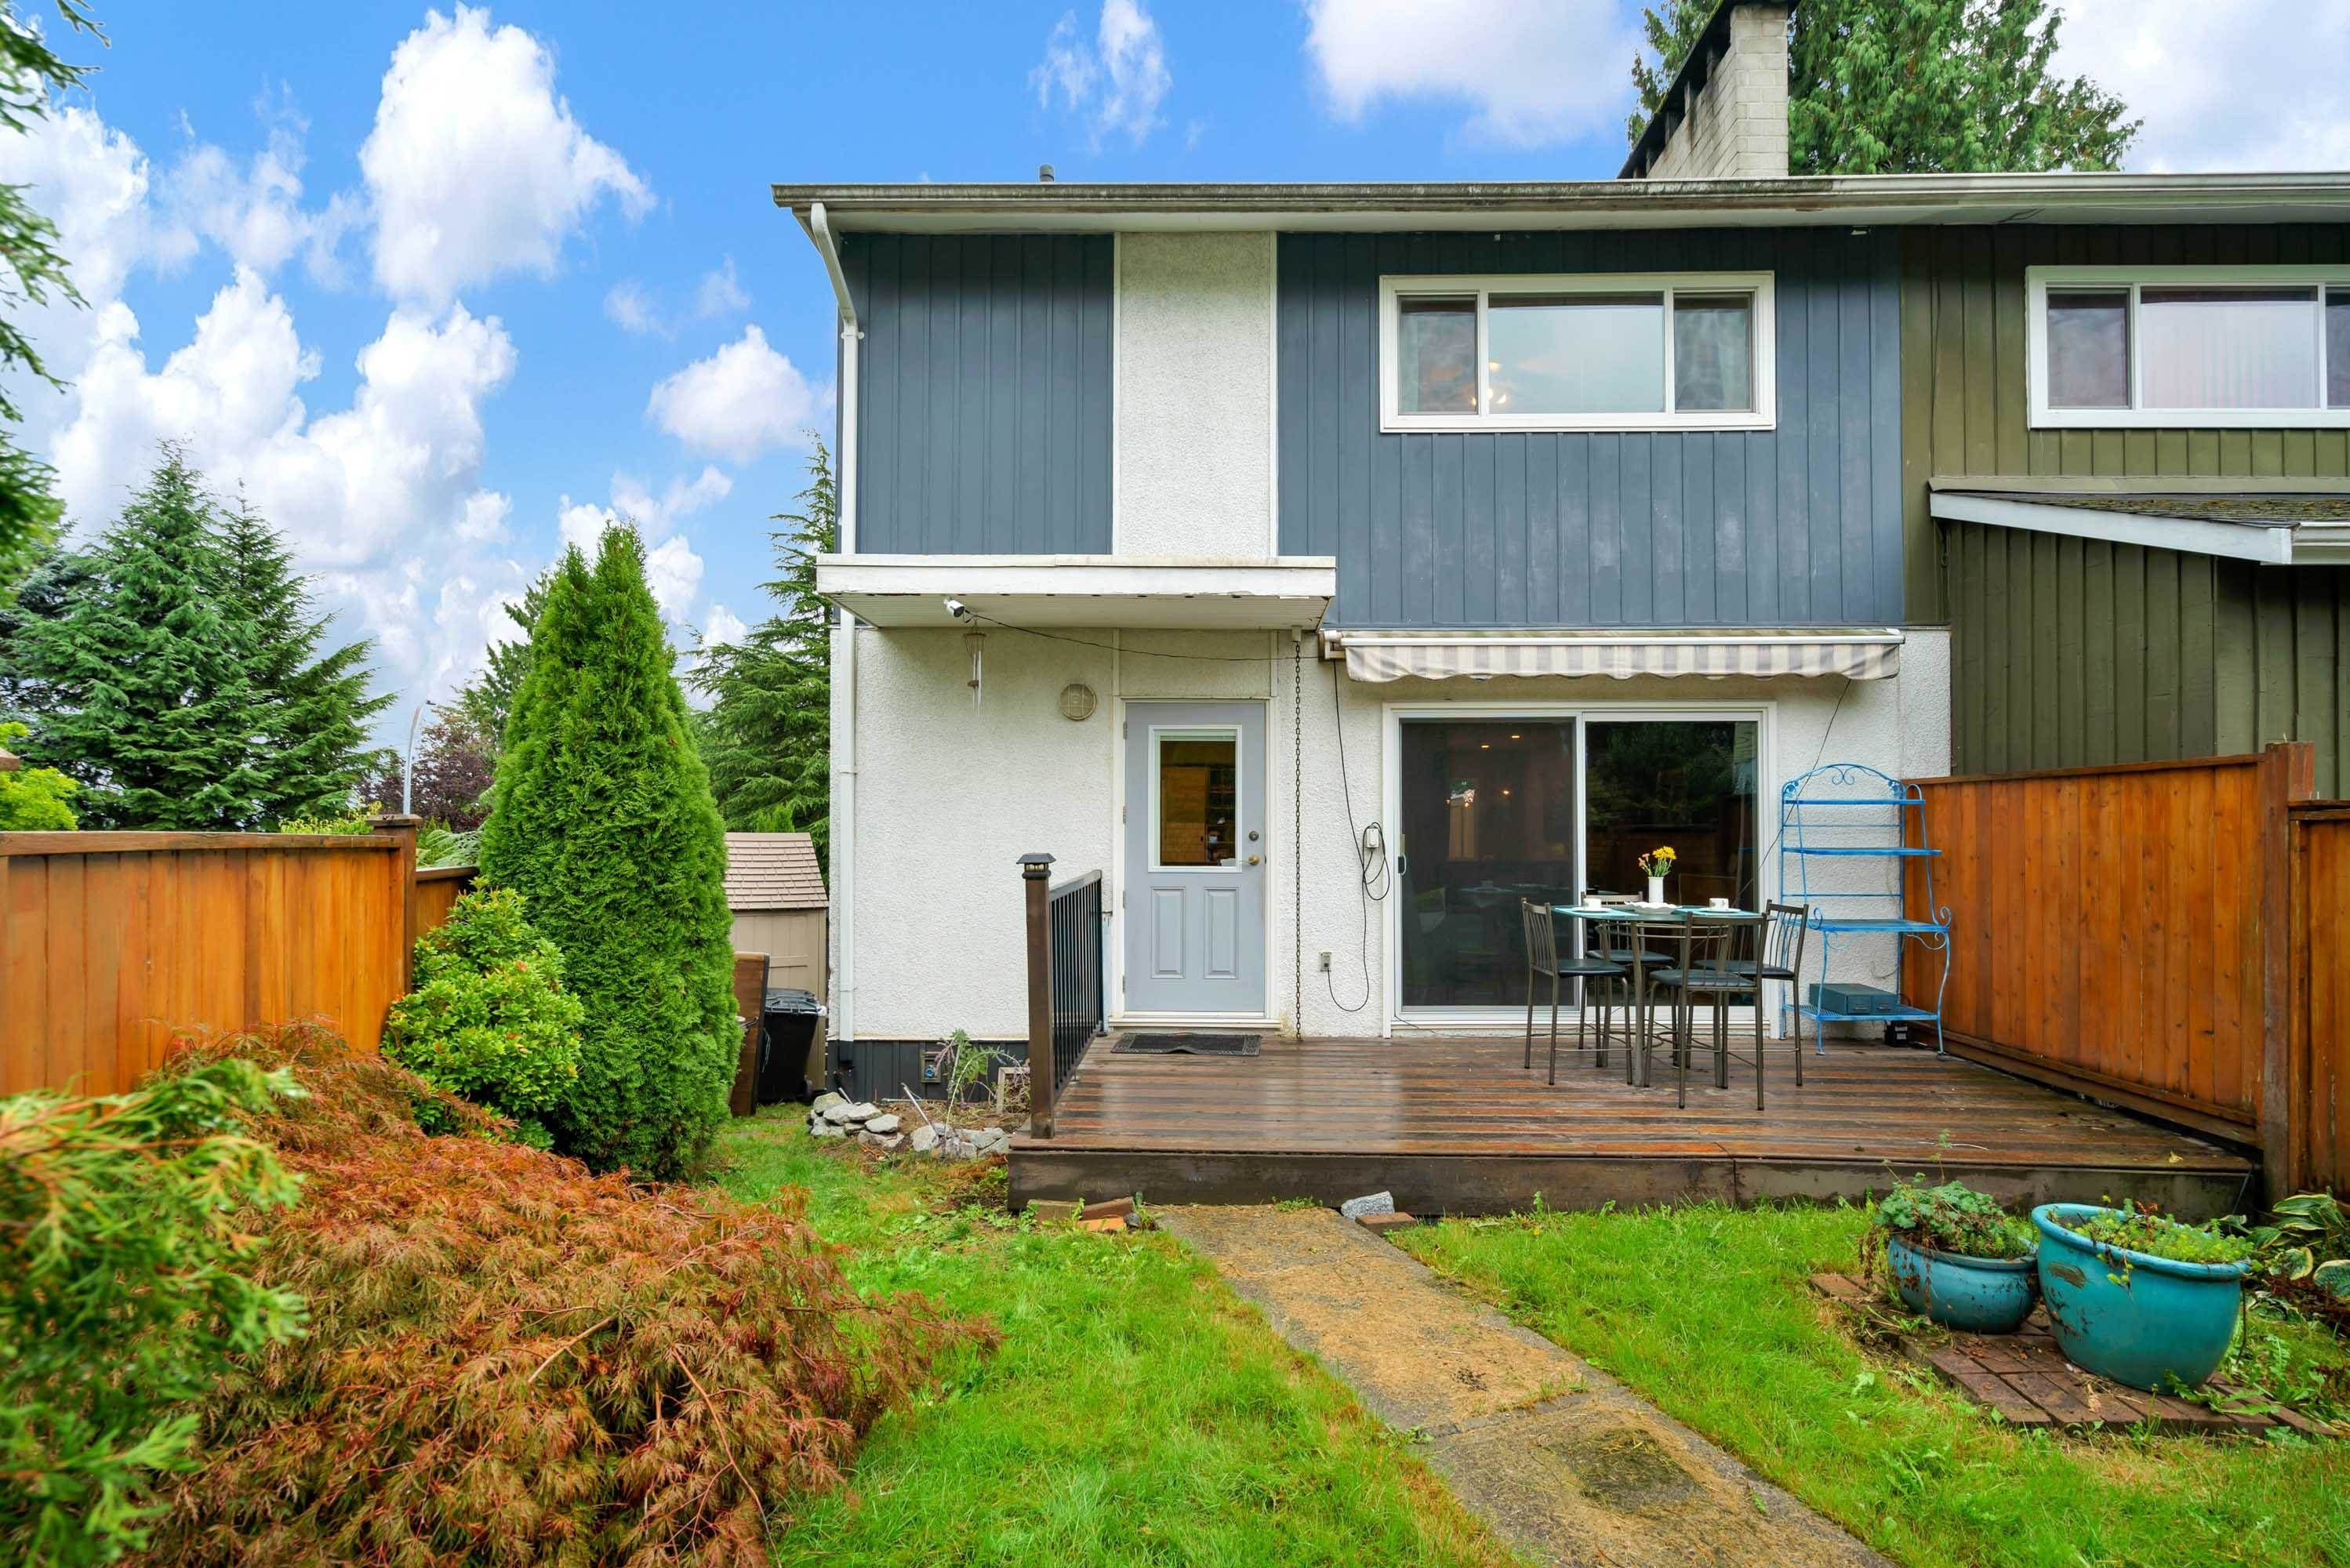 Bright and beautifully updated row home nestled in the heart of Port Coquitlam.  Boasting four bedrooms, two bathrooms, a massive private fenced yard for the kids to play and an incredible view while sipping your morning coffee overlooking the Fraser River and Mt. Baker. Quiet end/corner unit has a 3892.75 ft² lot, updated kitchen, flooring, newer windows, roof was replaced approx 6 yr ago. Greenbelt in front of the property is grandfathered in.  Own your own property without strata fees.  Basement has potential for two bedroom with separate entry, plans were previously drawn up, bathroom is roughed in.  Close parks, walking trail and K-12 schools.